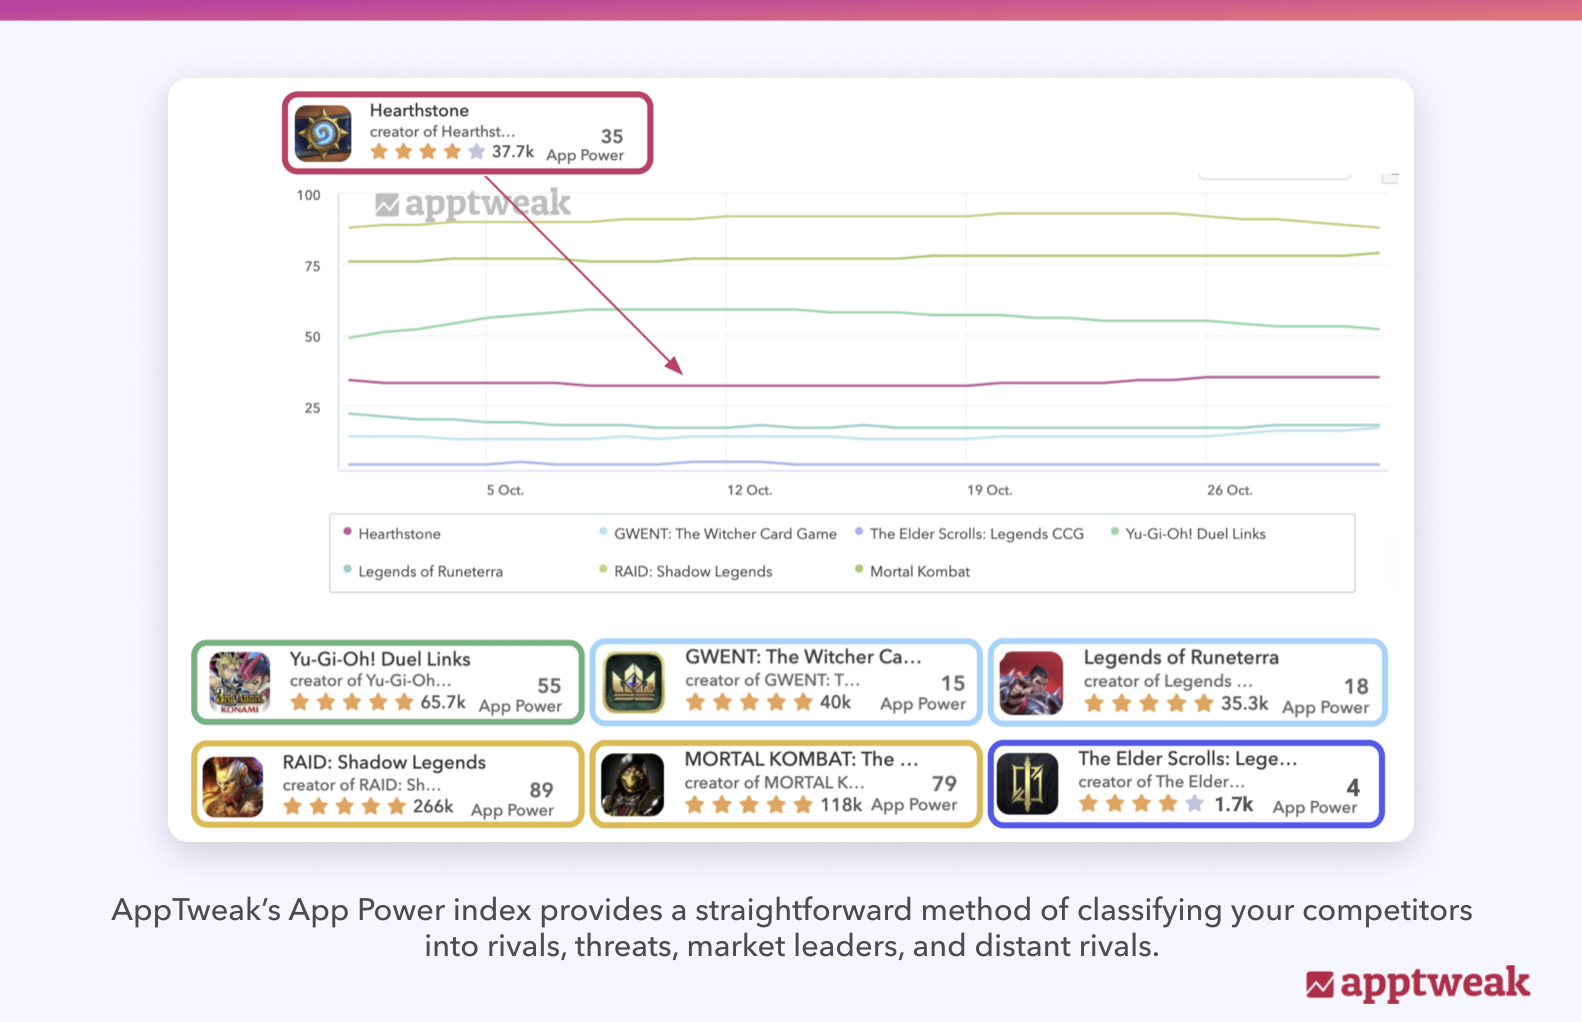 AppTweak's App Power index provides a straightforward method of classifying your competitors into rivals, threats, market leaders, and distant rivals.